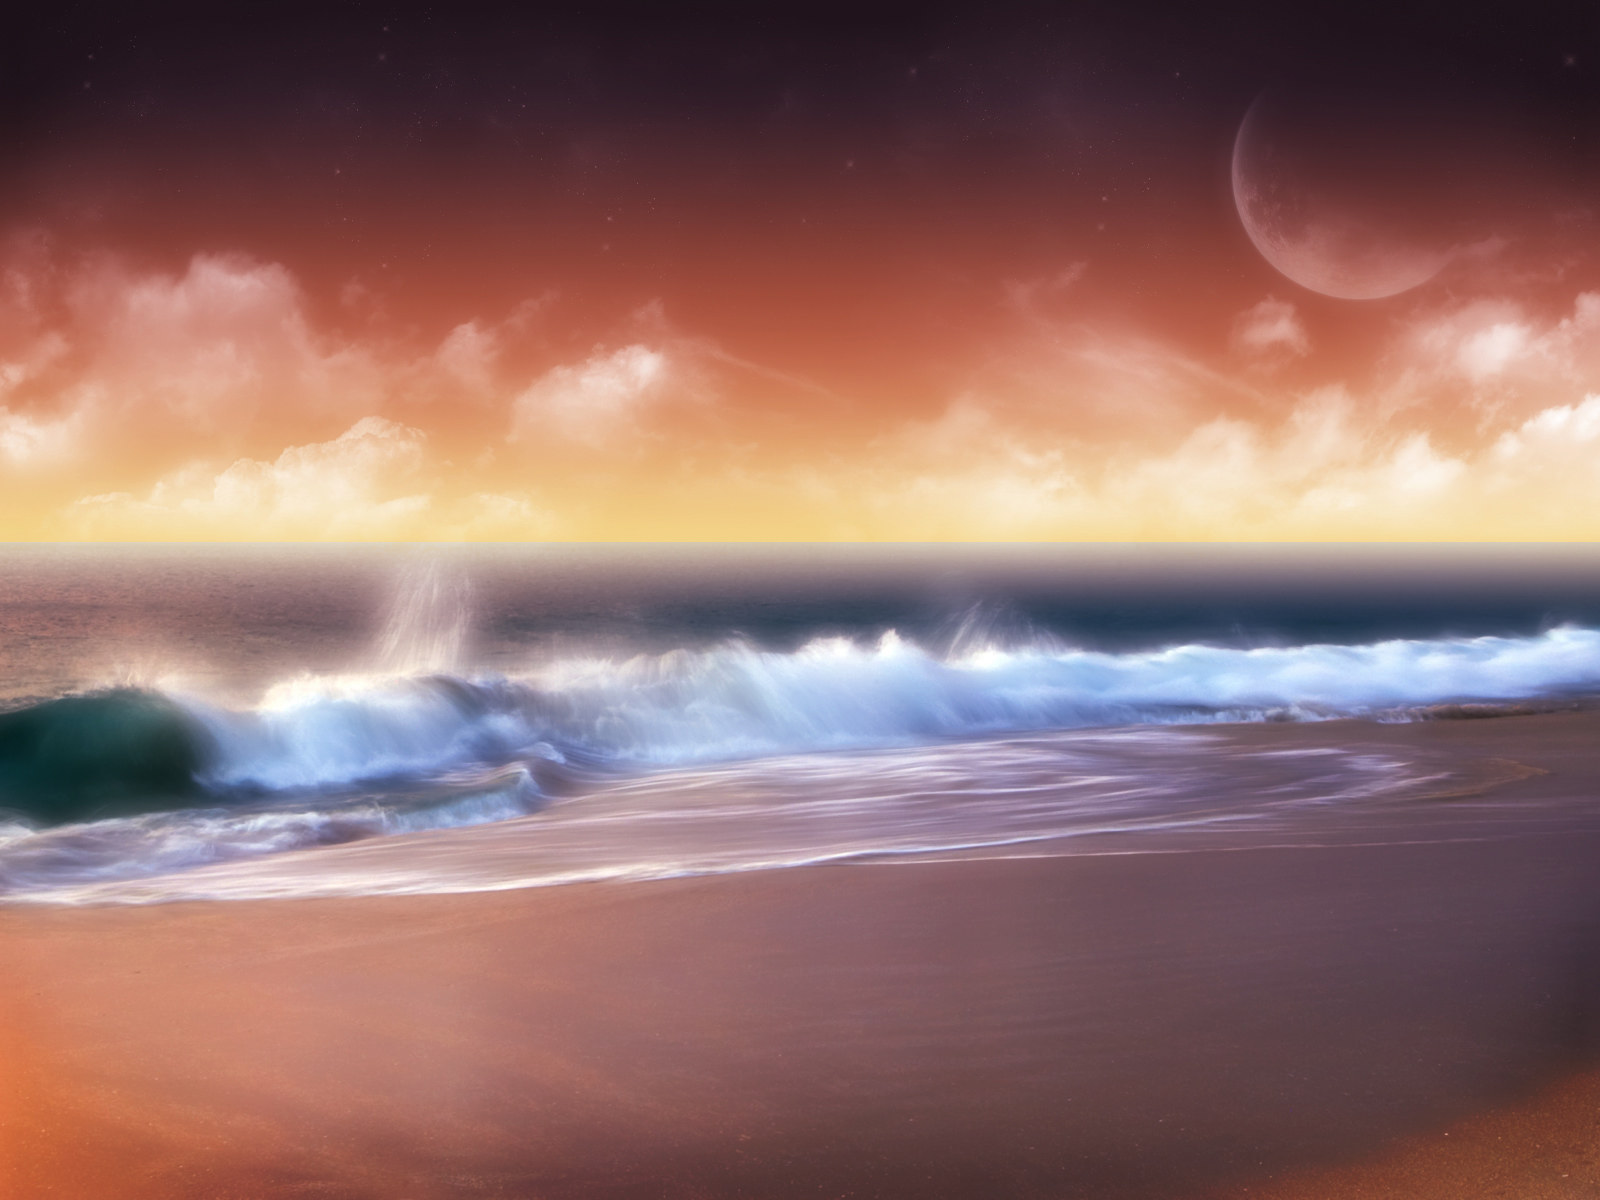 wallpapers-room_com___ocean_sunset_v2_by_nuahs_1600x1200